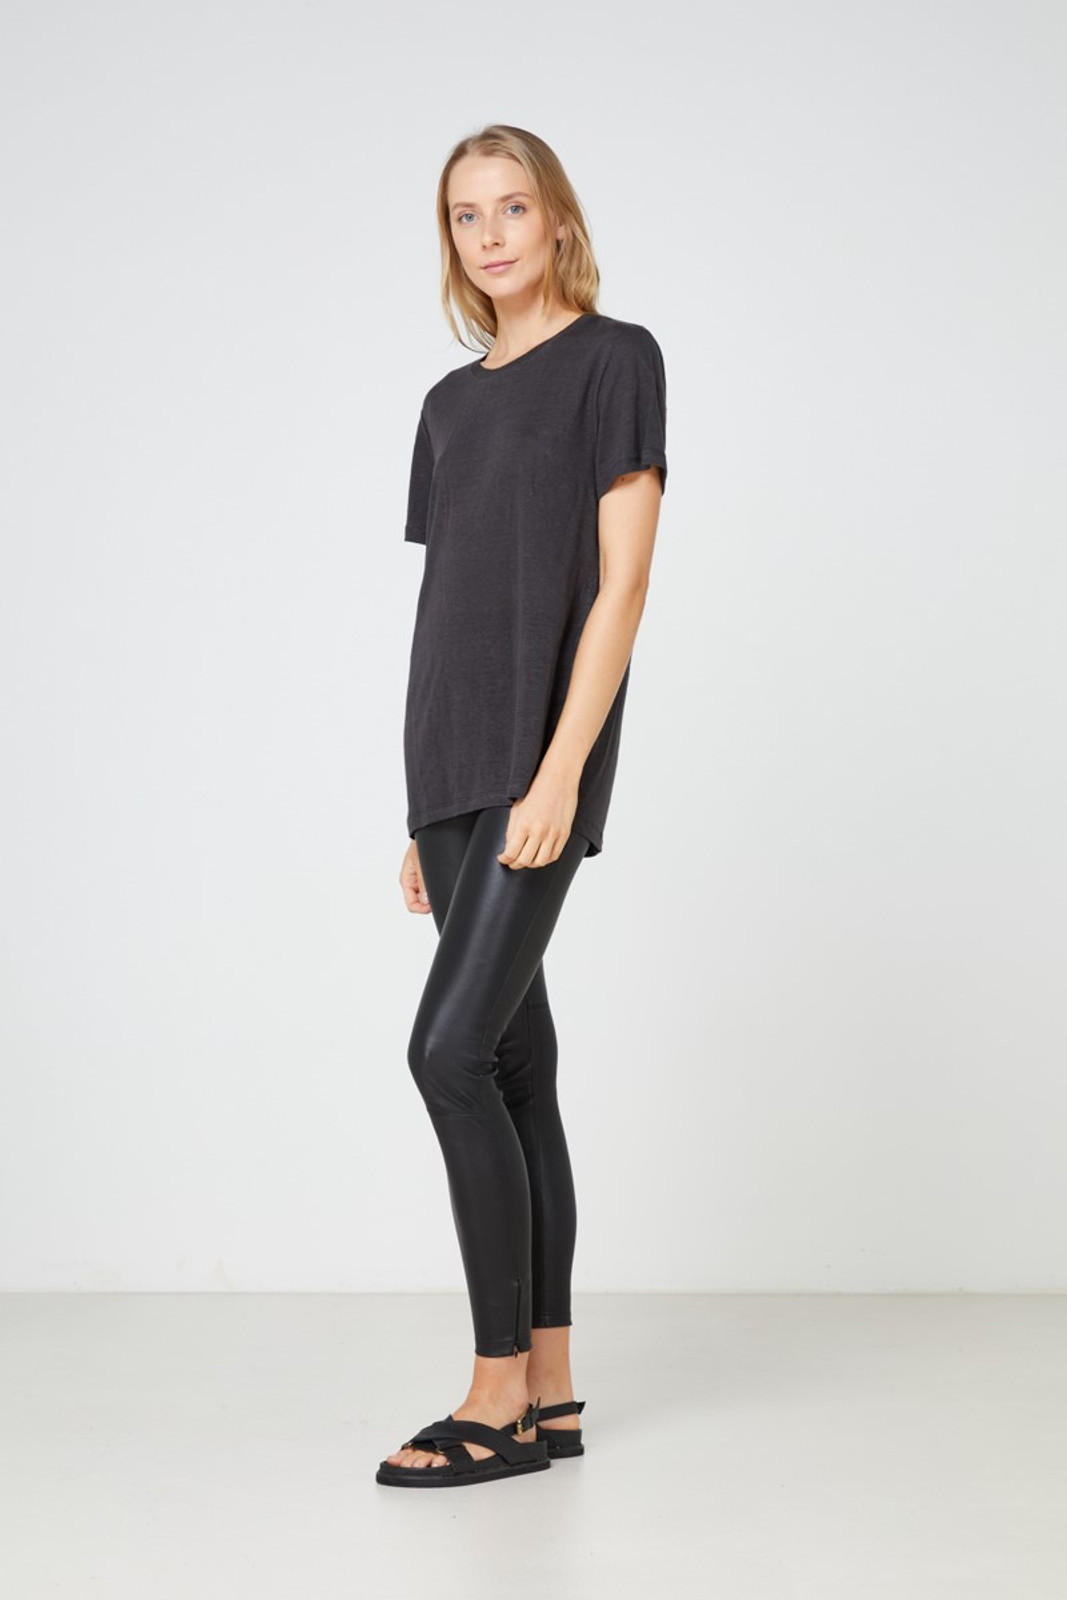 Elka Collective EC Linen Crew Neck Tee Black  0